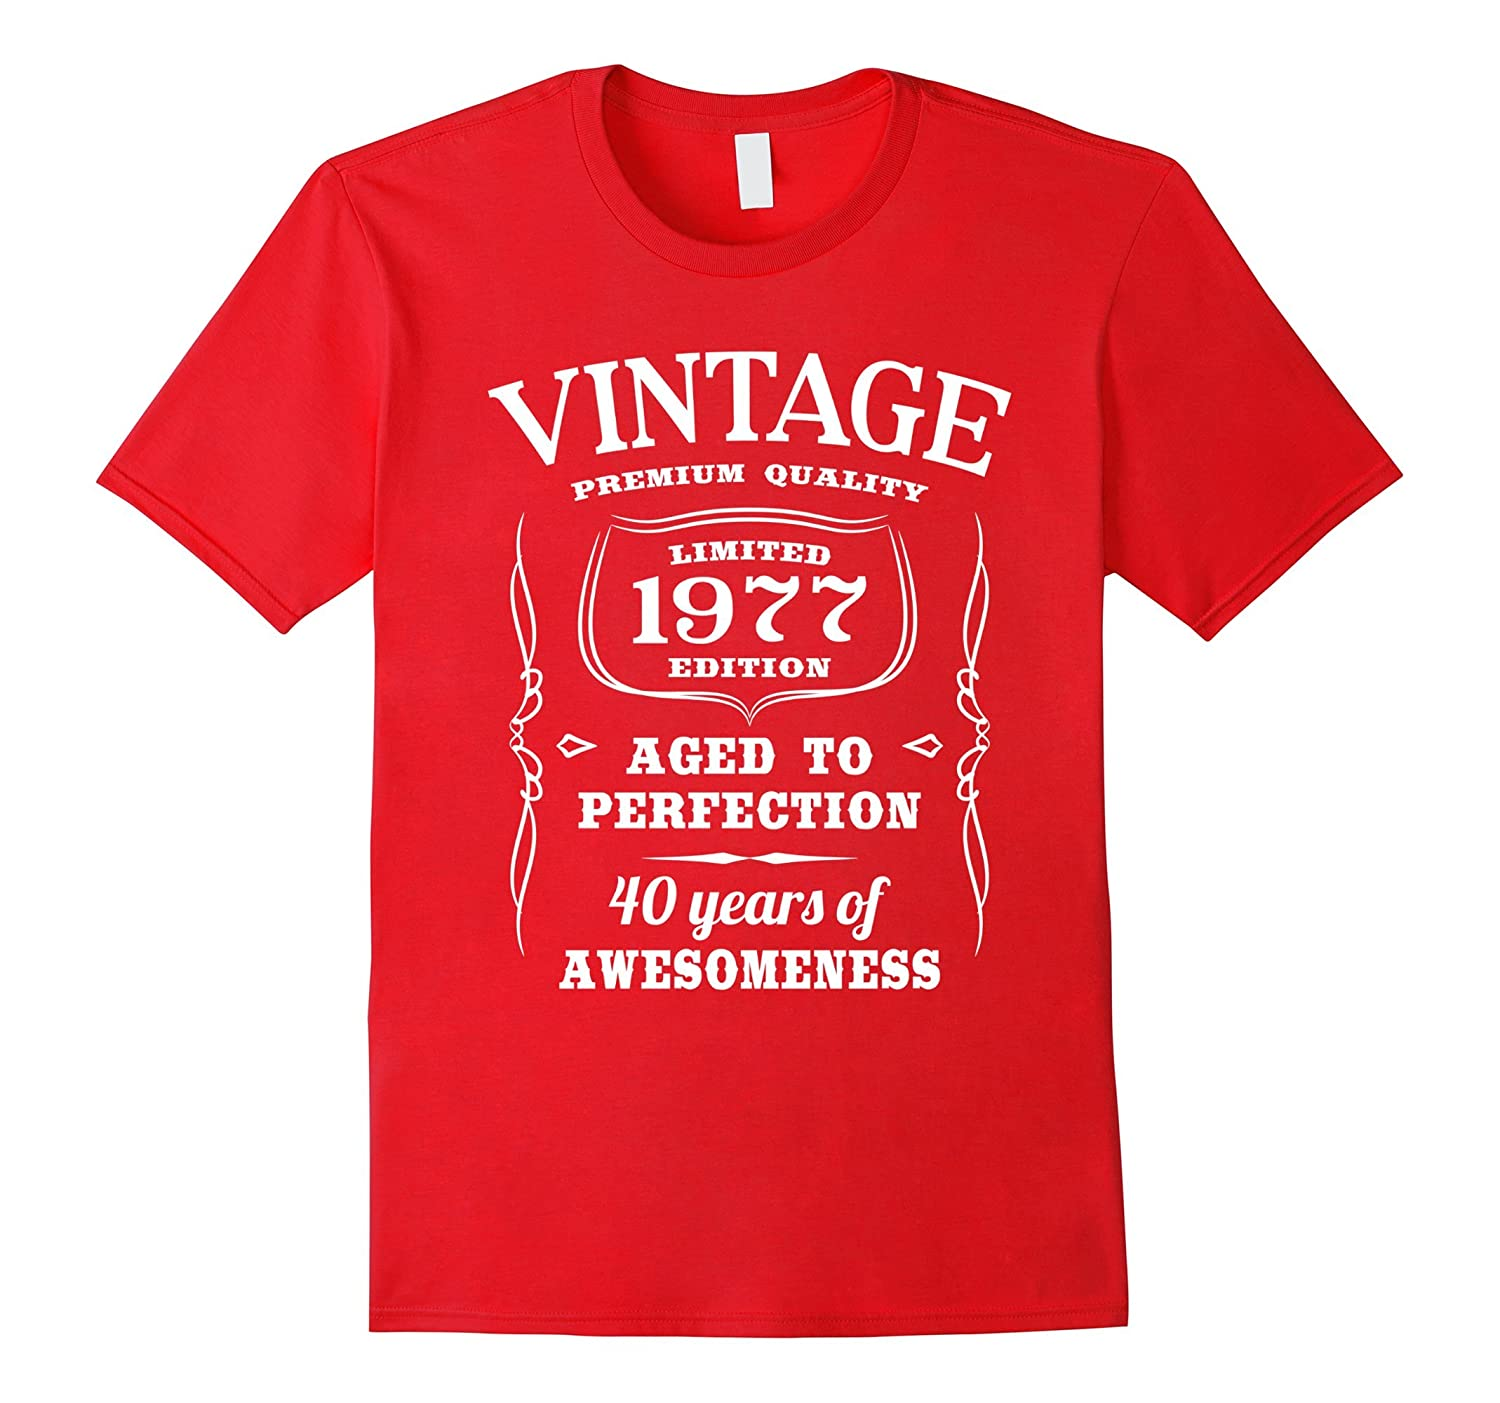 40th Birthday Gift T-Shirt Limited 1977 Edition-Art